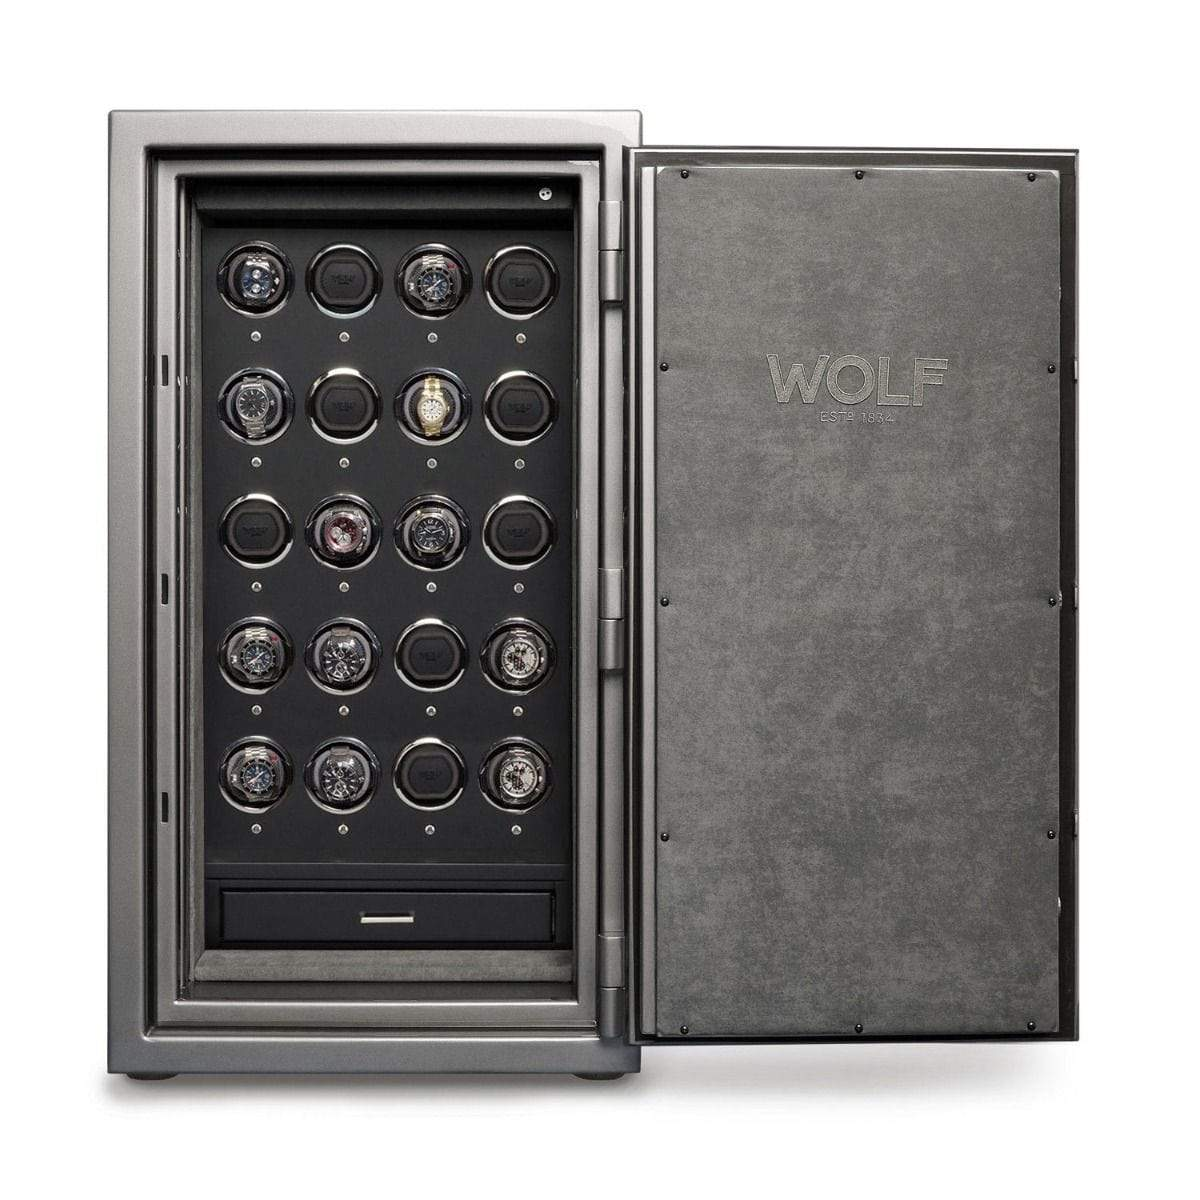 WOLF 1834 Atlas 20 Piece Winder Safe Armadillo Safe and Vault